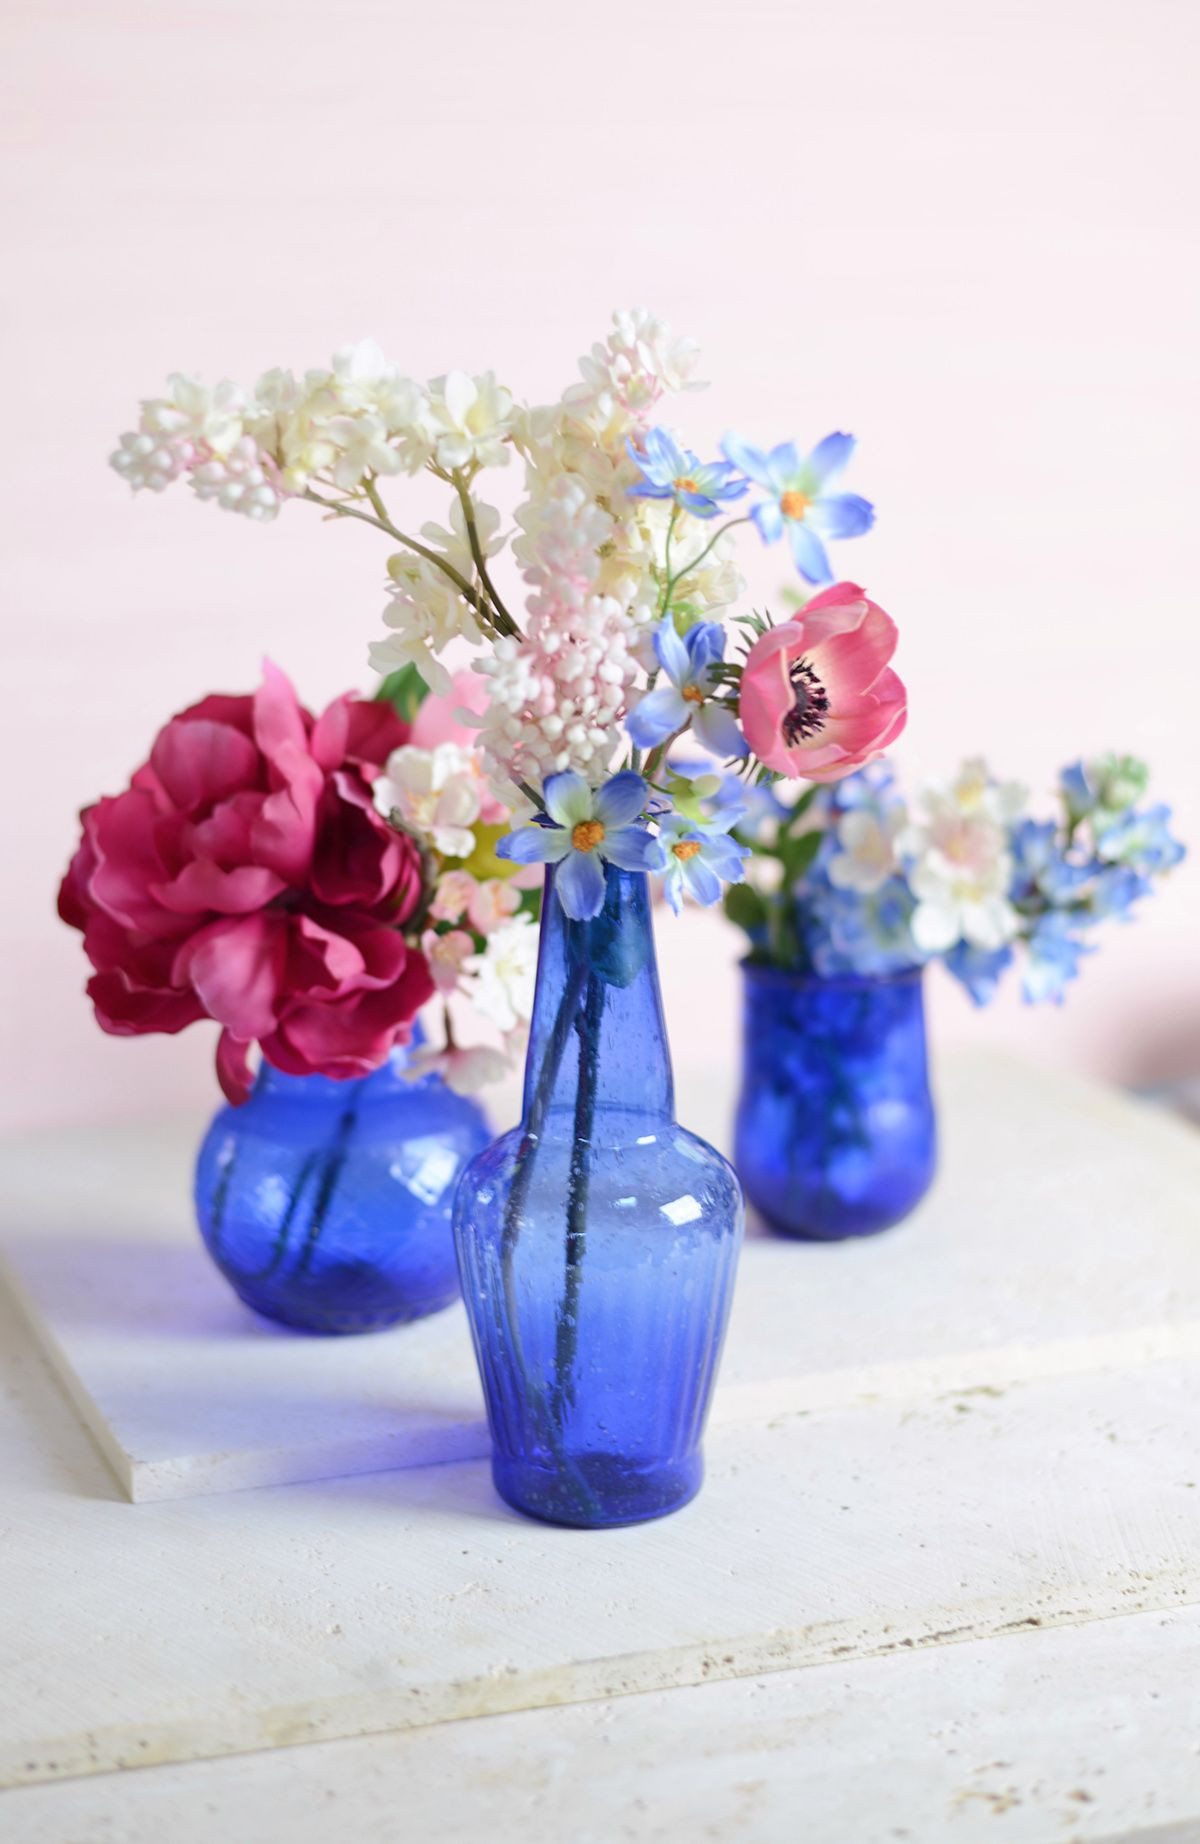 Make your table really pop with these vibrant blue vases Cobalt blue is a great accent color for a spring wedding or a summer wedding